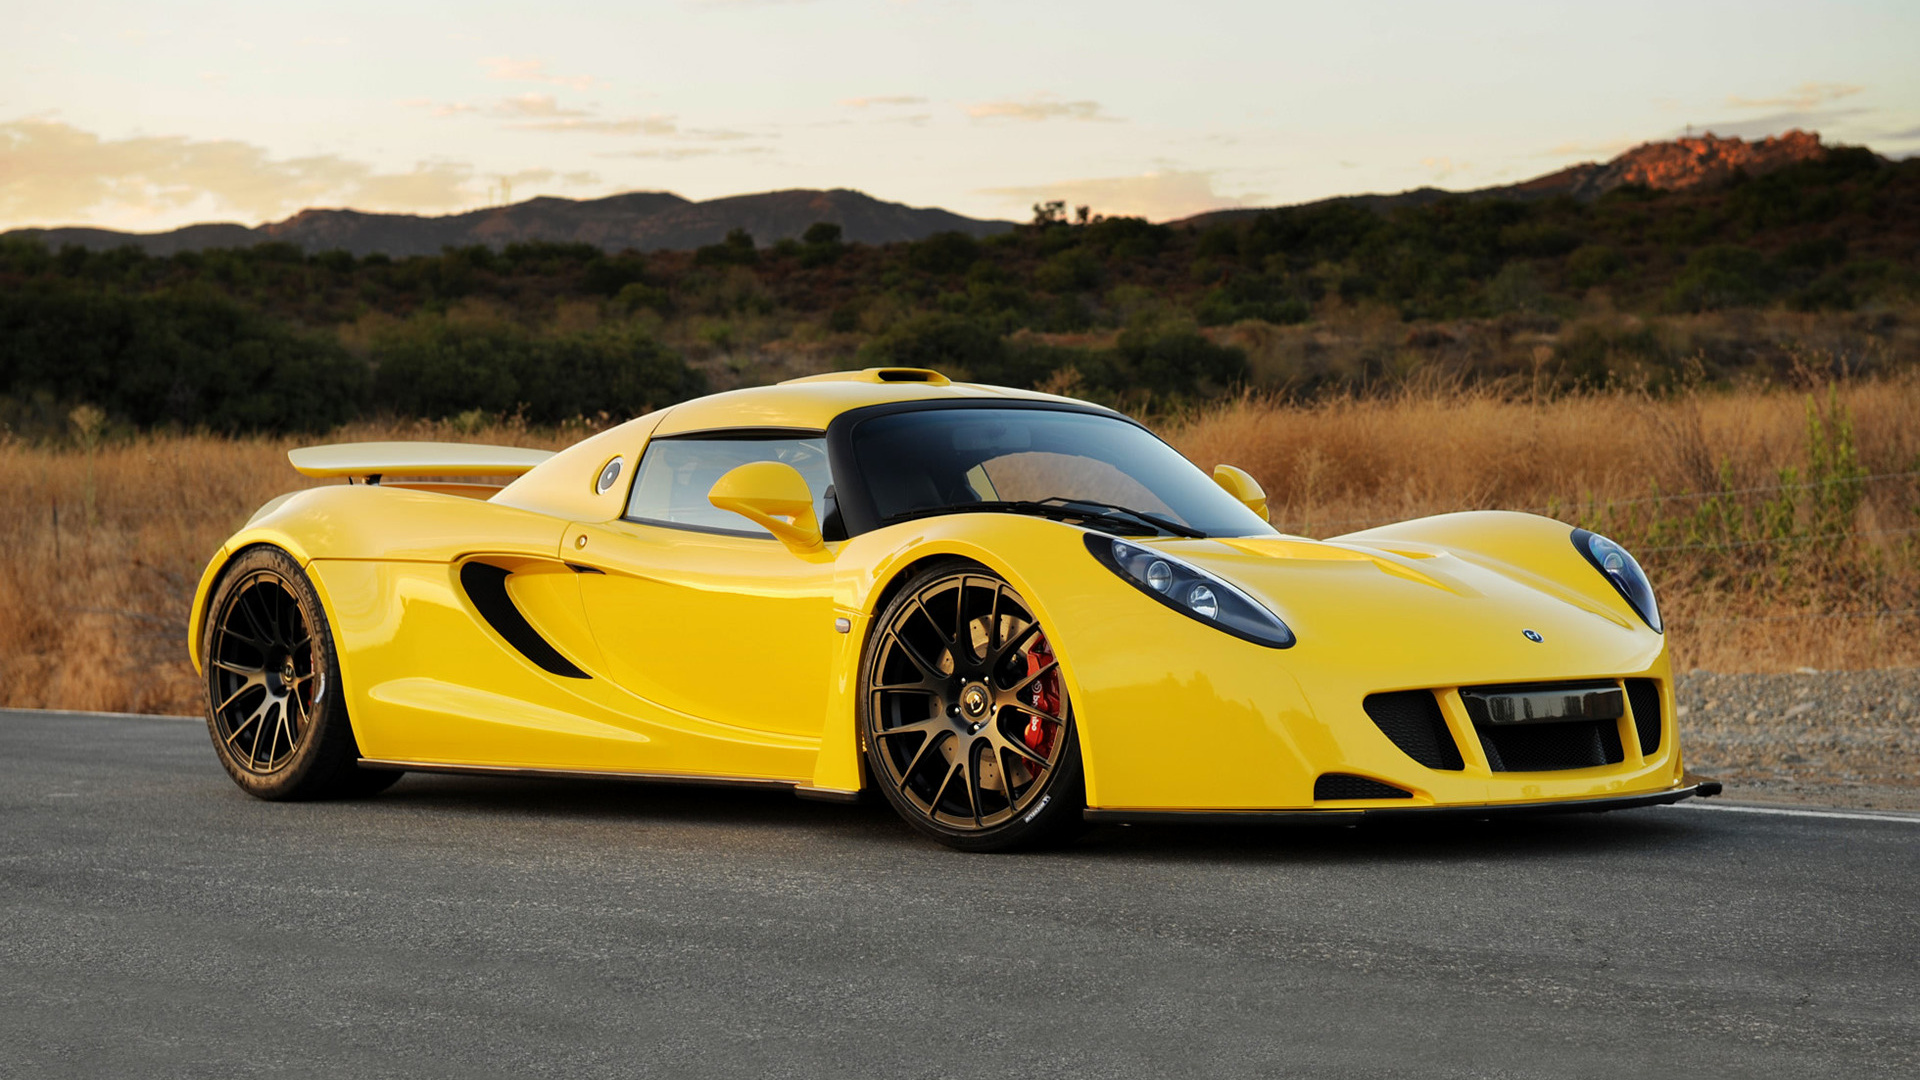 Hennessey Venom GT 2010 Wallpapers and HD Images 1920x1080